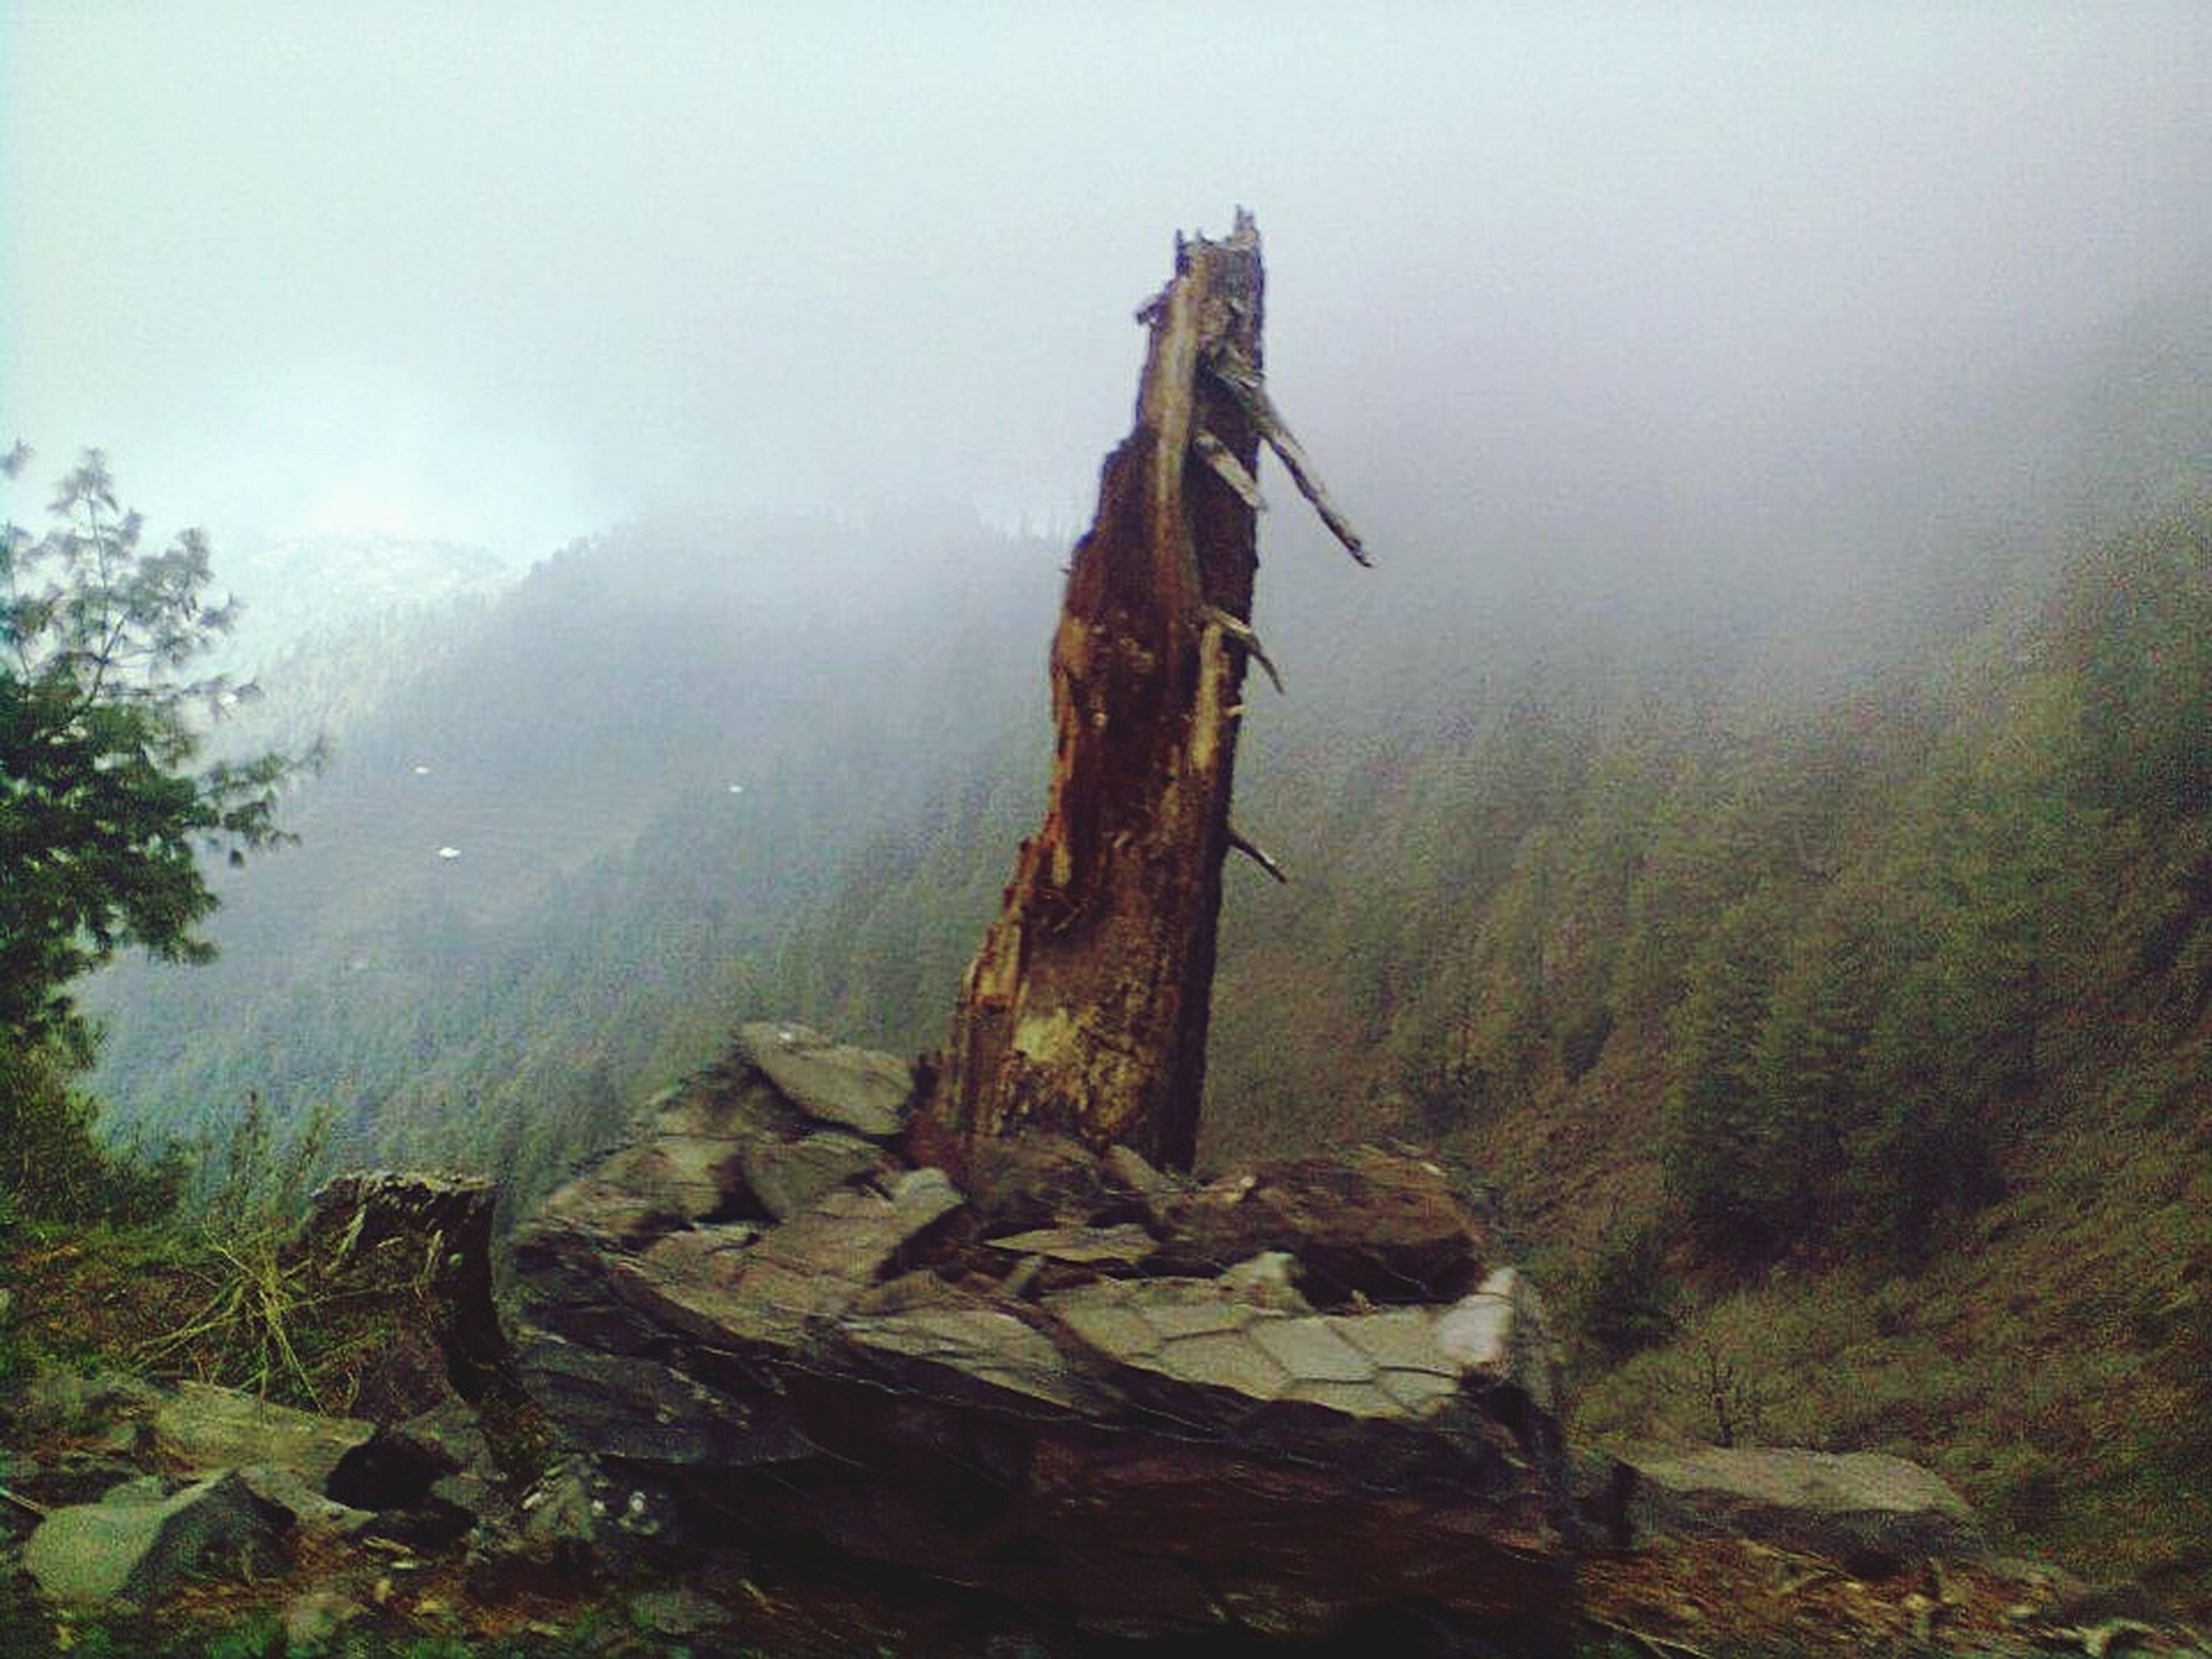 fog, tranquility, foggy, tranquil scene, nature, tree, sky, scenics, landscape, non-urban scene, beauty in nature, rock - object, wood - material, weather, day, forest, outdoors, remote, growth, mountain